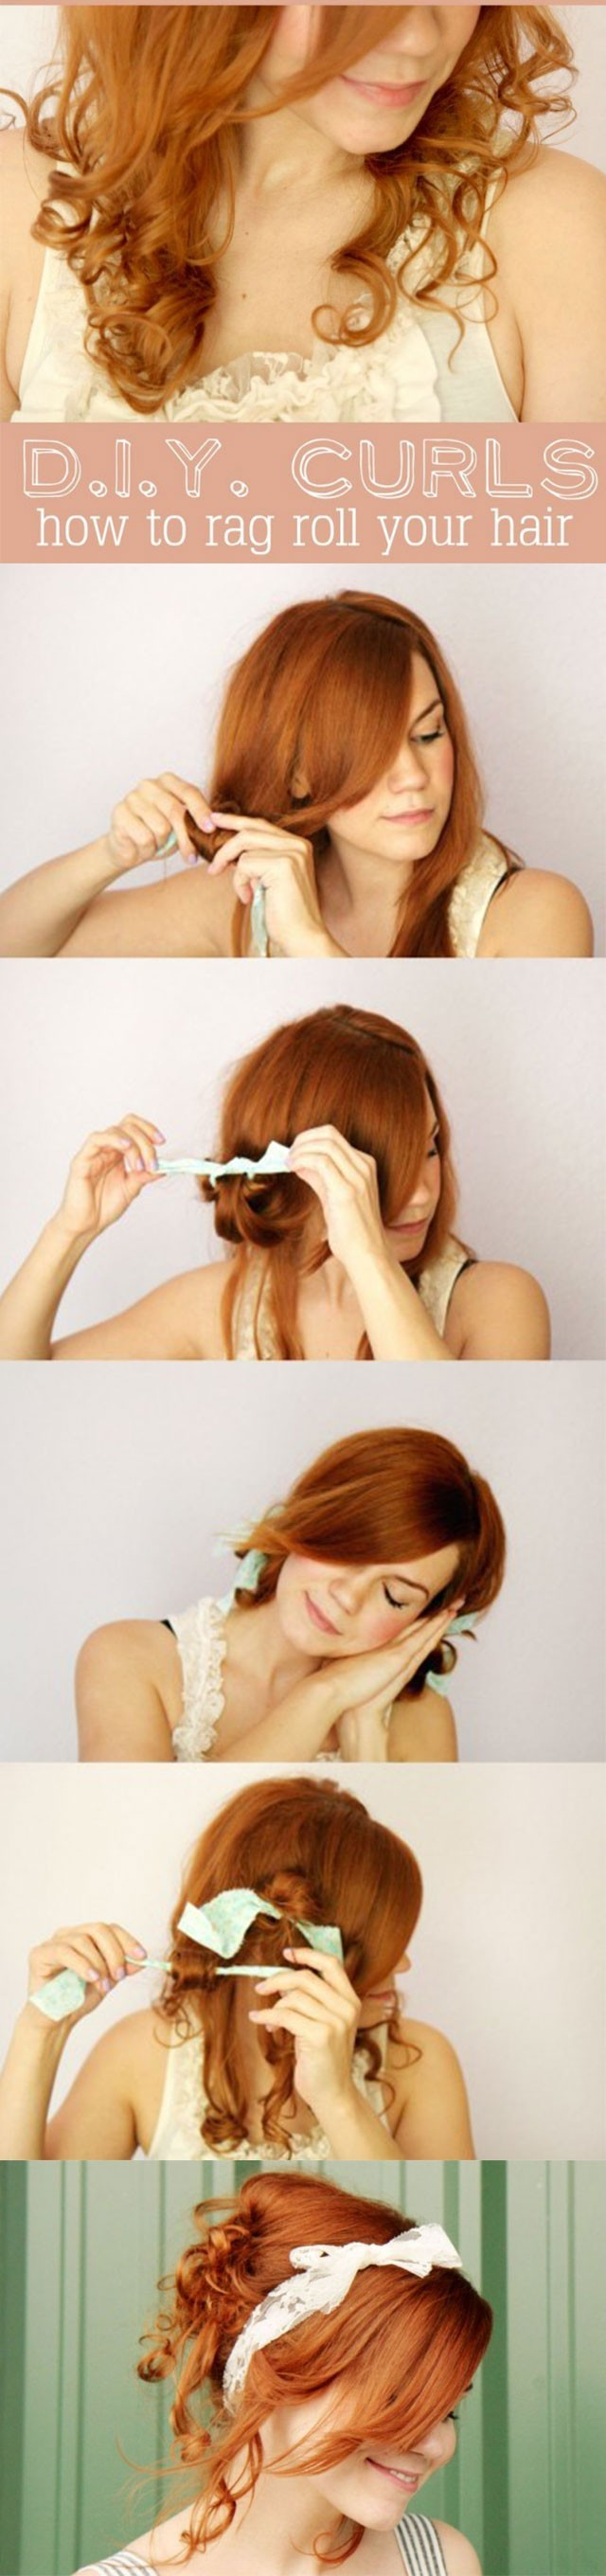 Cute-Holiday-Hairstyles-How-to-Rag-Roll-your-Hair